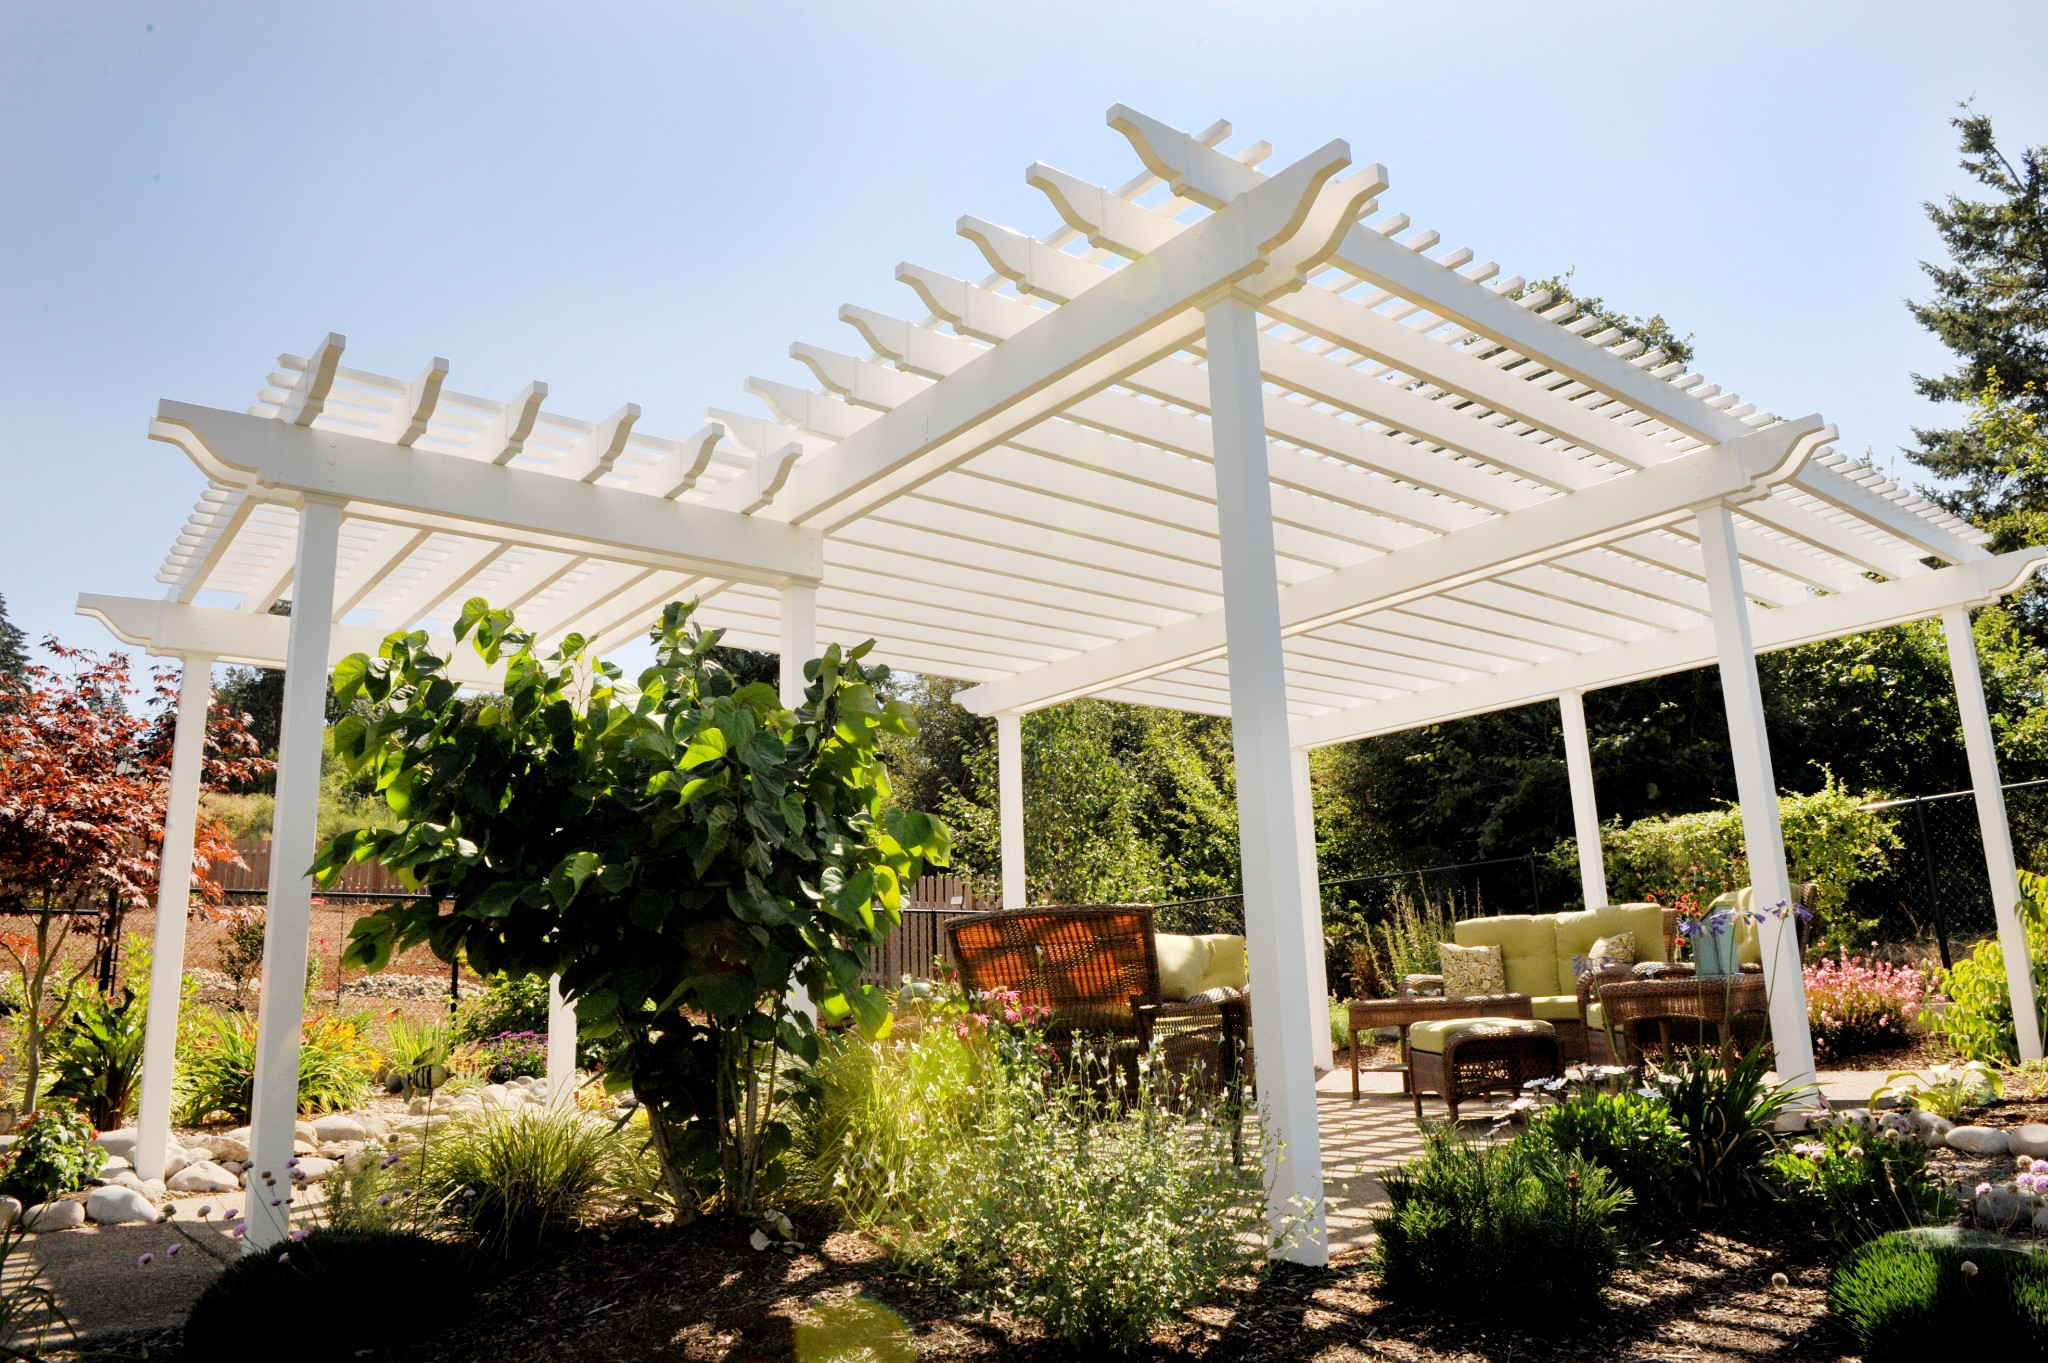 Pergola Covers Create Your Very Own Secret Garden